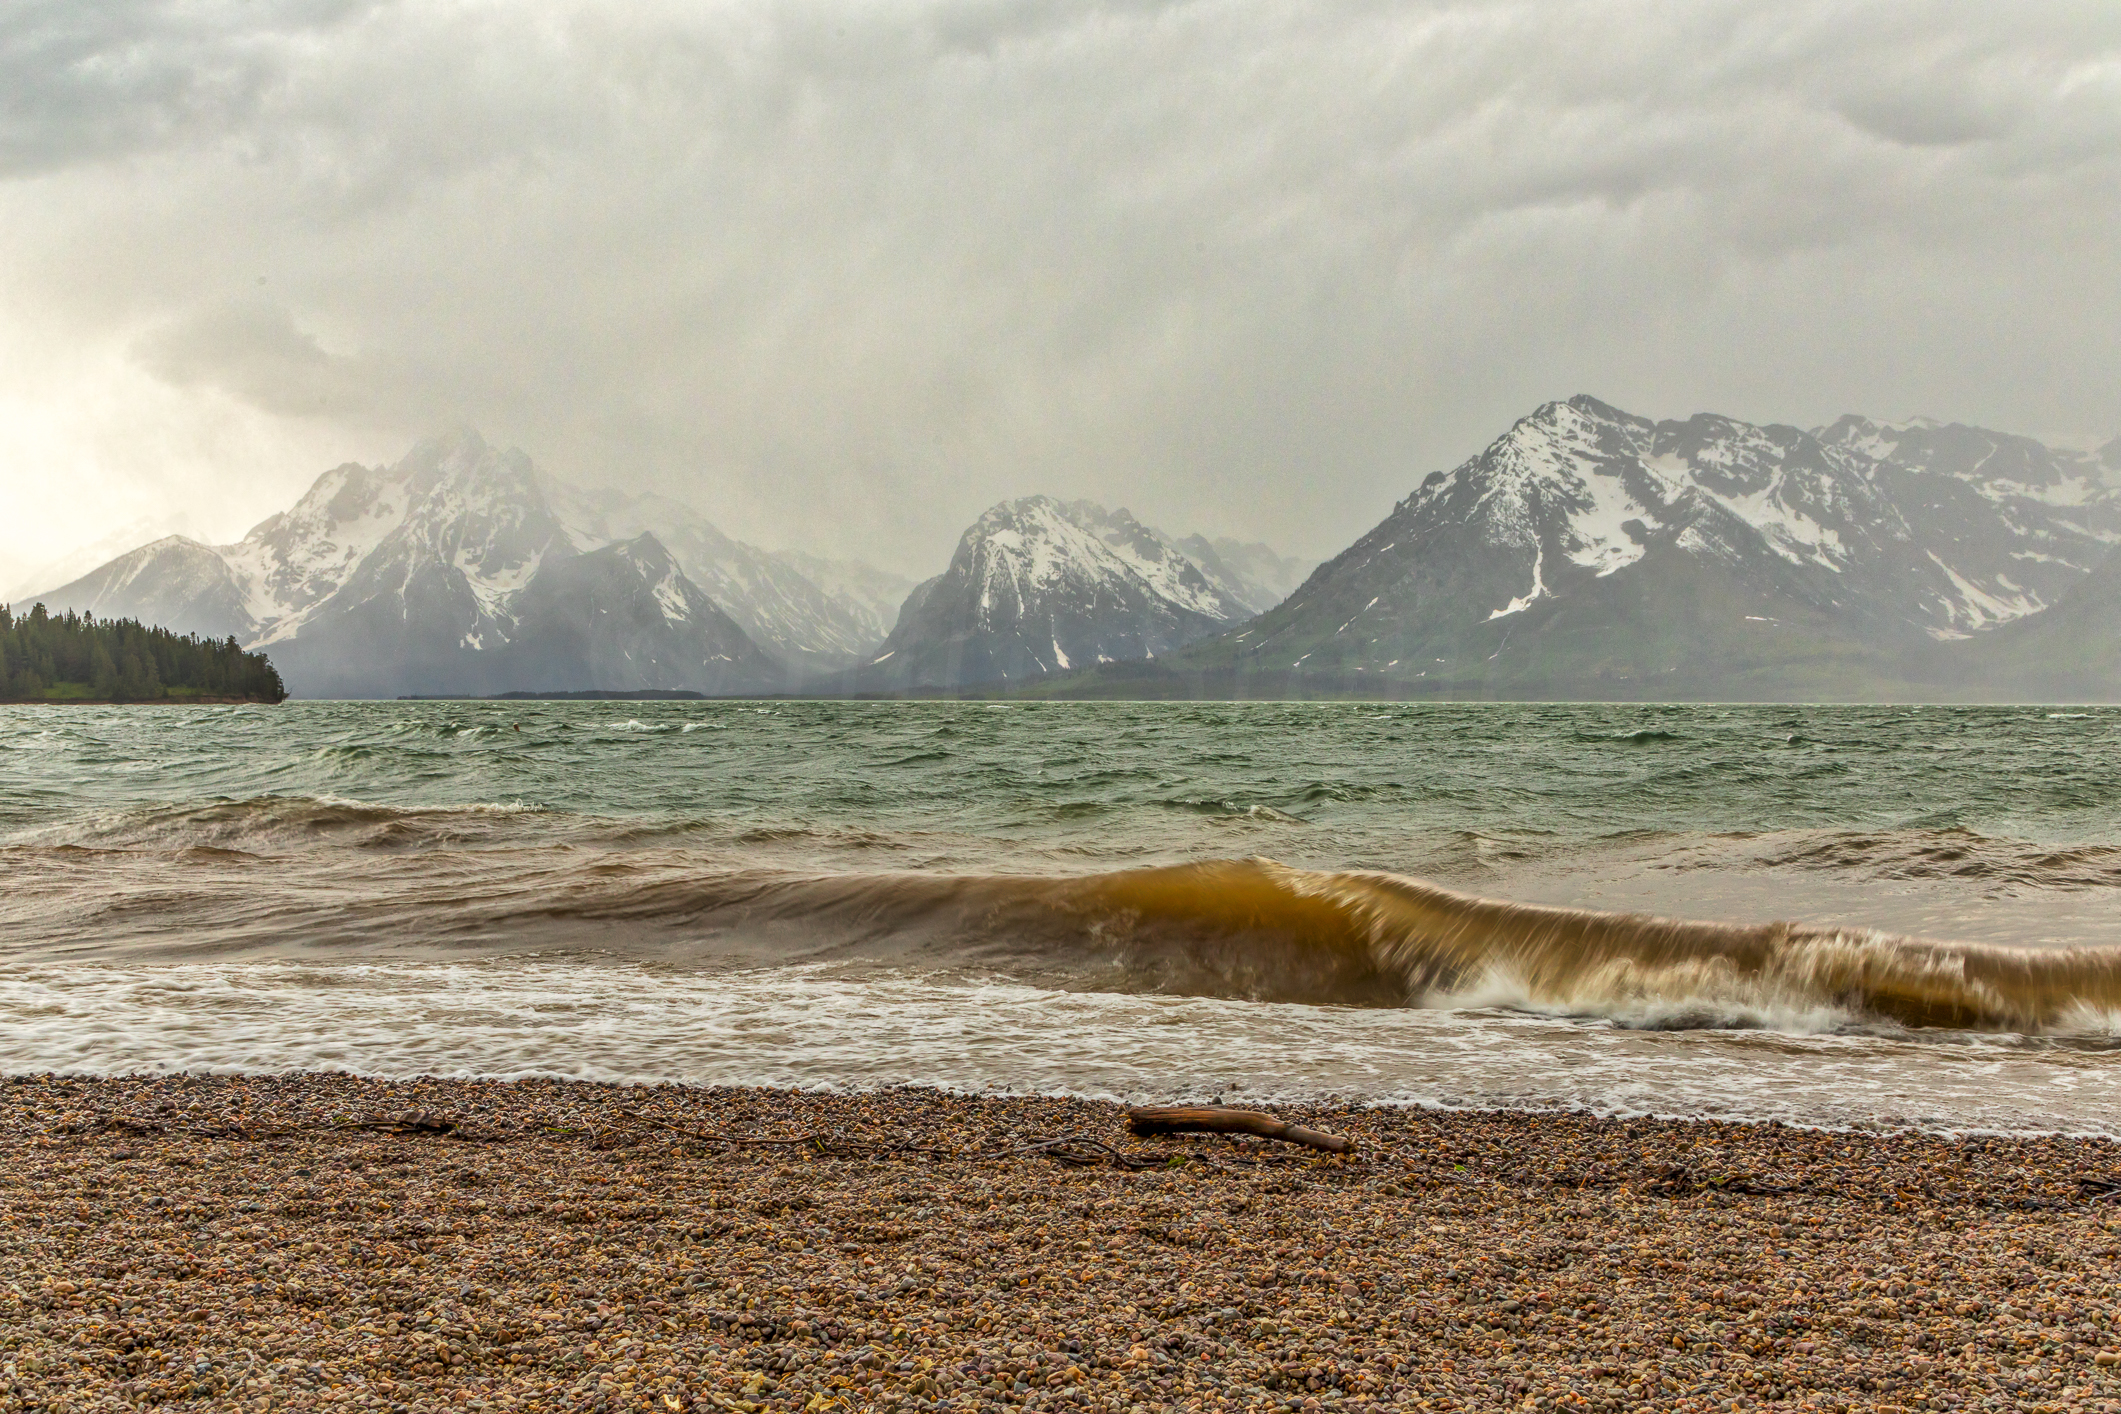 Colter Bay, Image # 3608